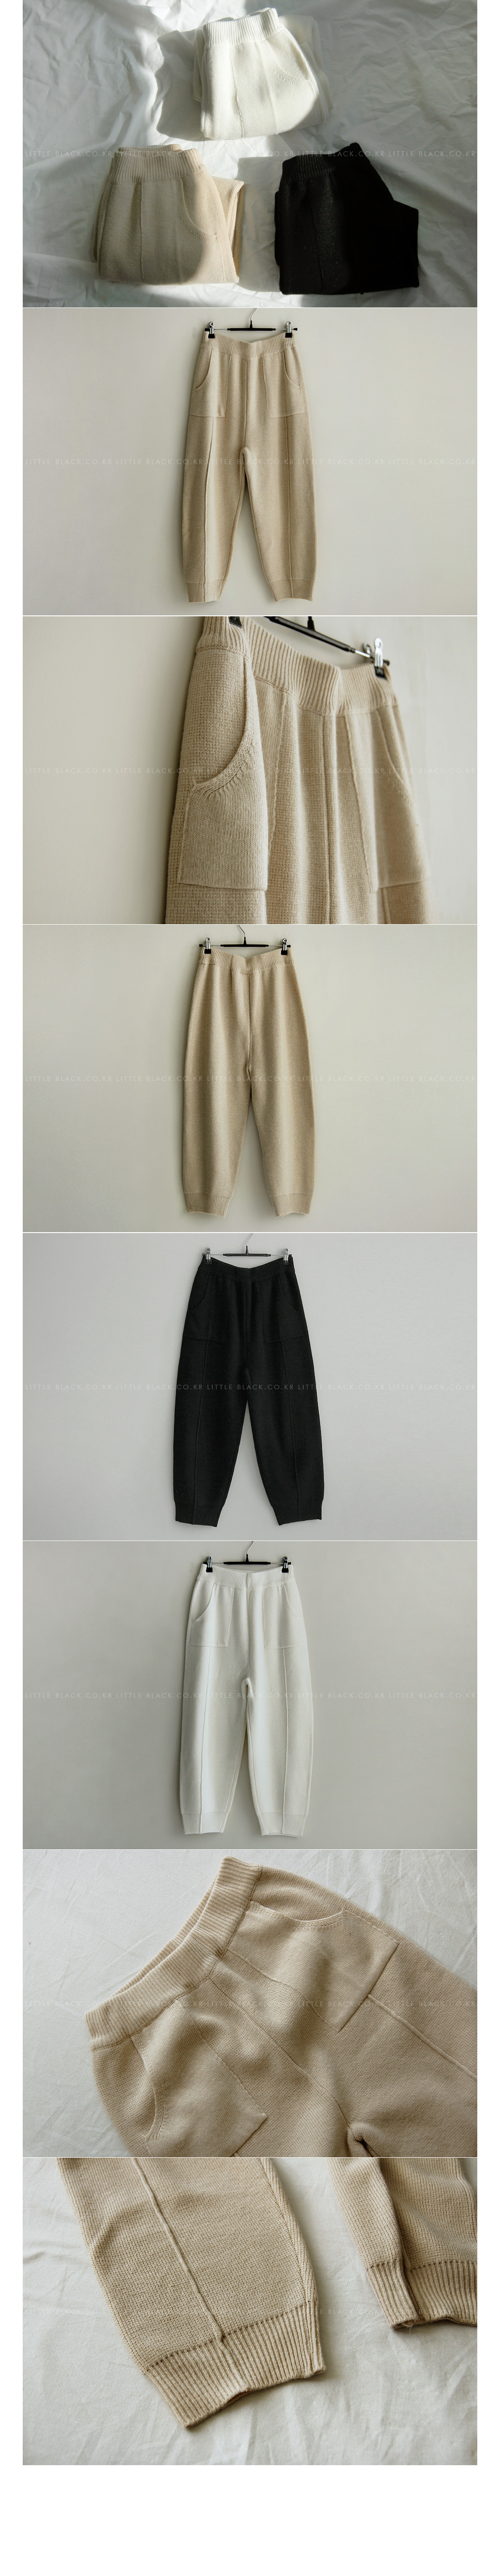 Pintuck Knit Pants|